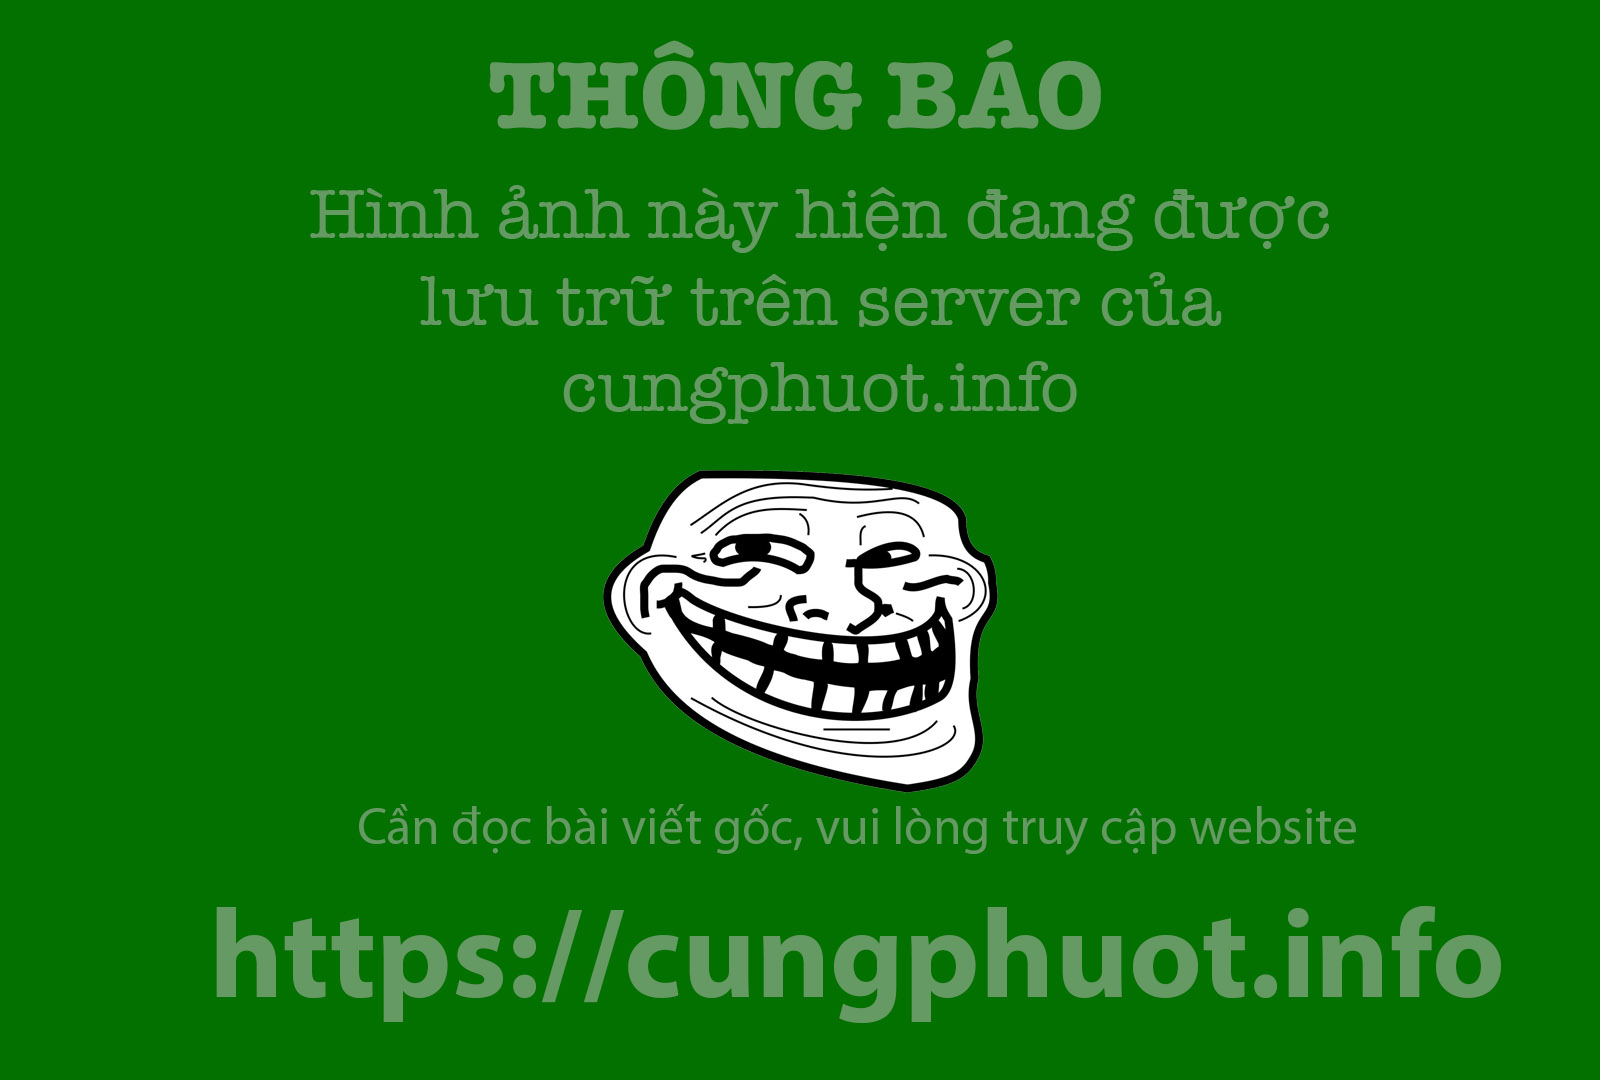 May von nui tren cong troi Muong Long hinh anh 8